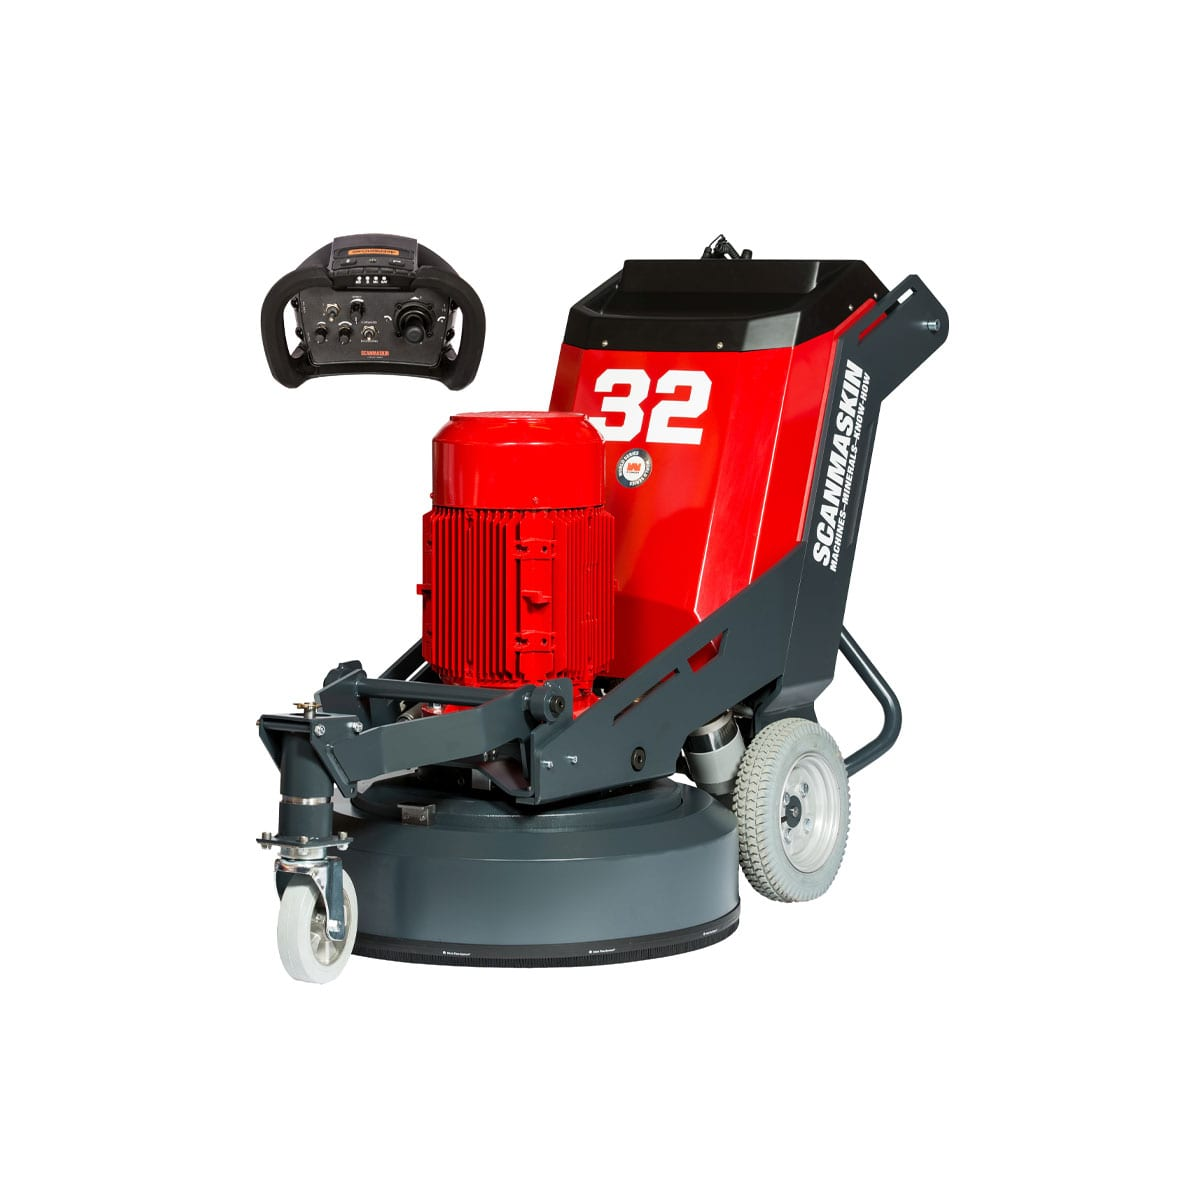 Scanmaskin 330 RS - regulated speed Concrete Grinder - Turning Point Supply